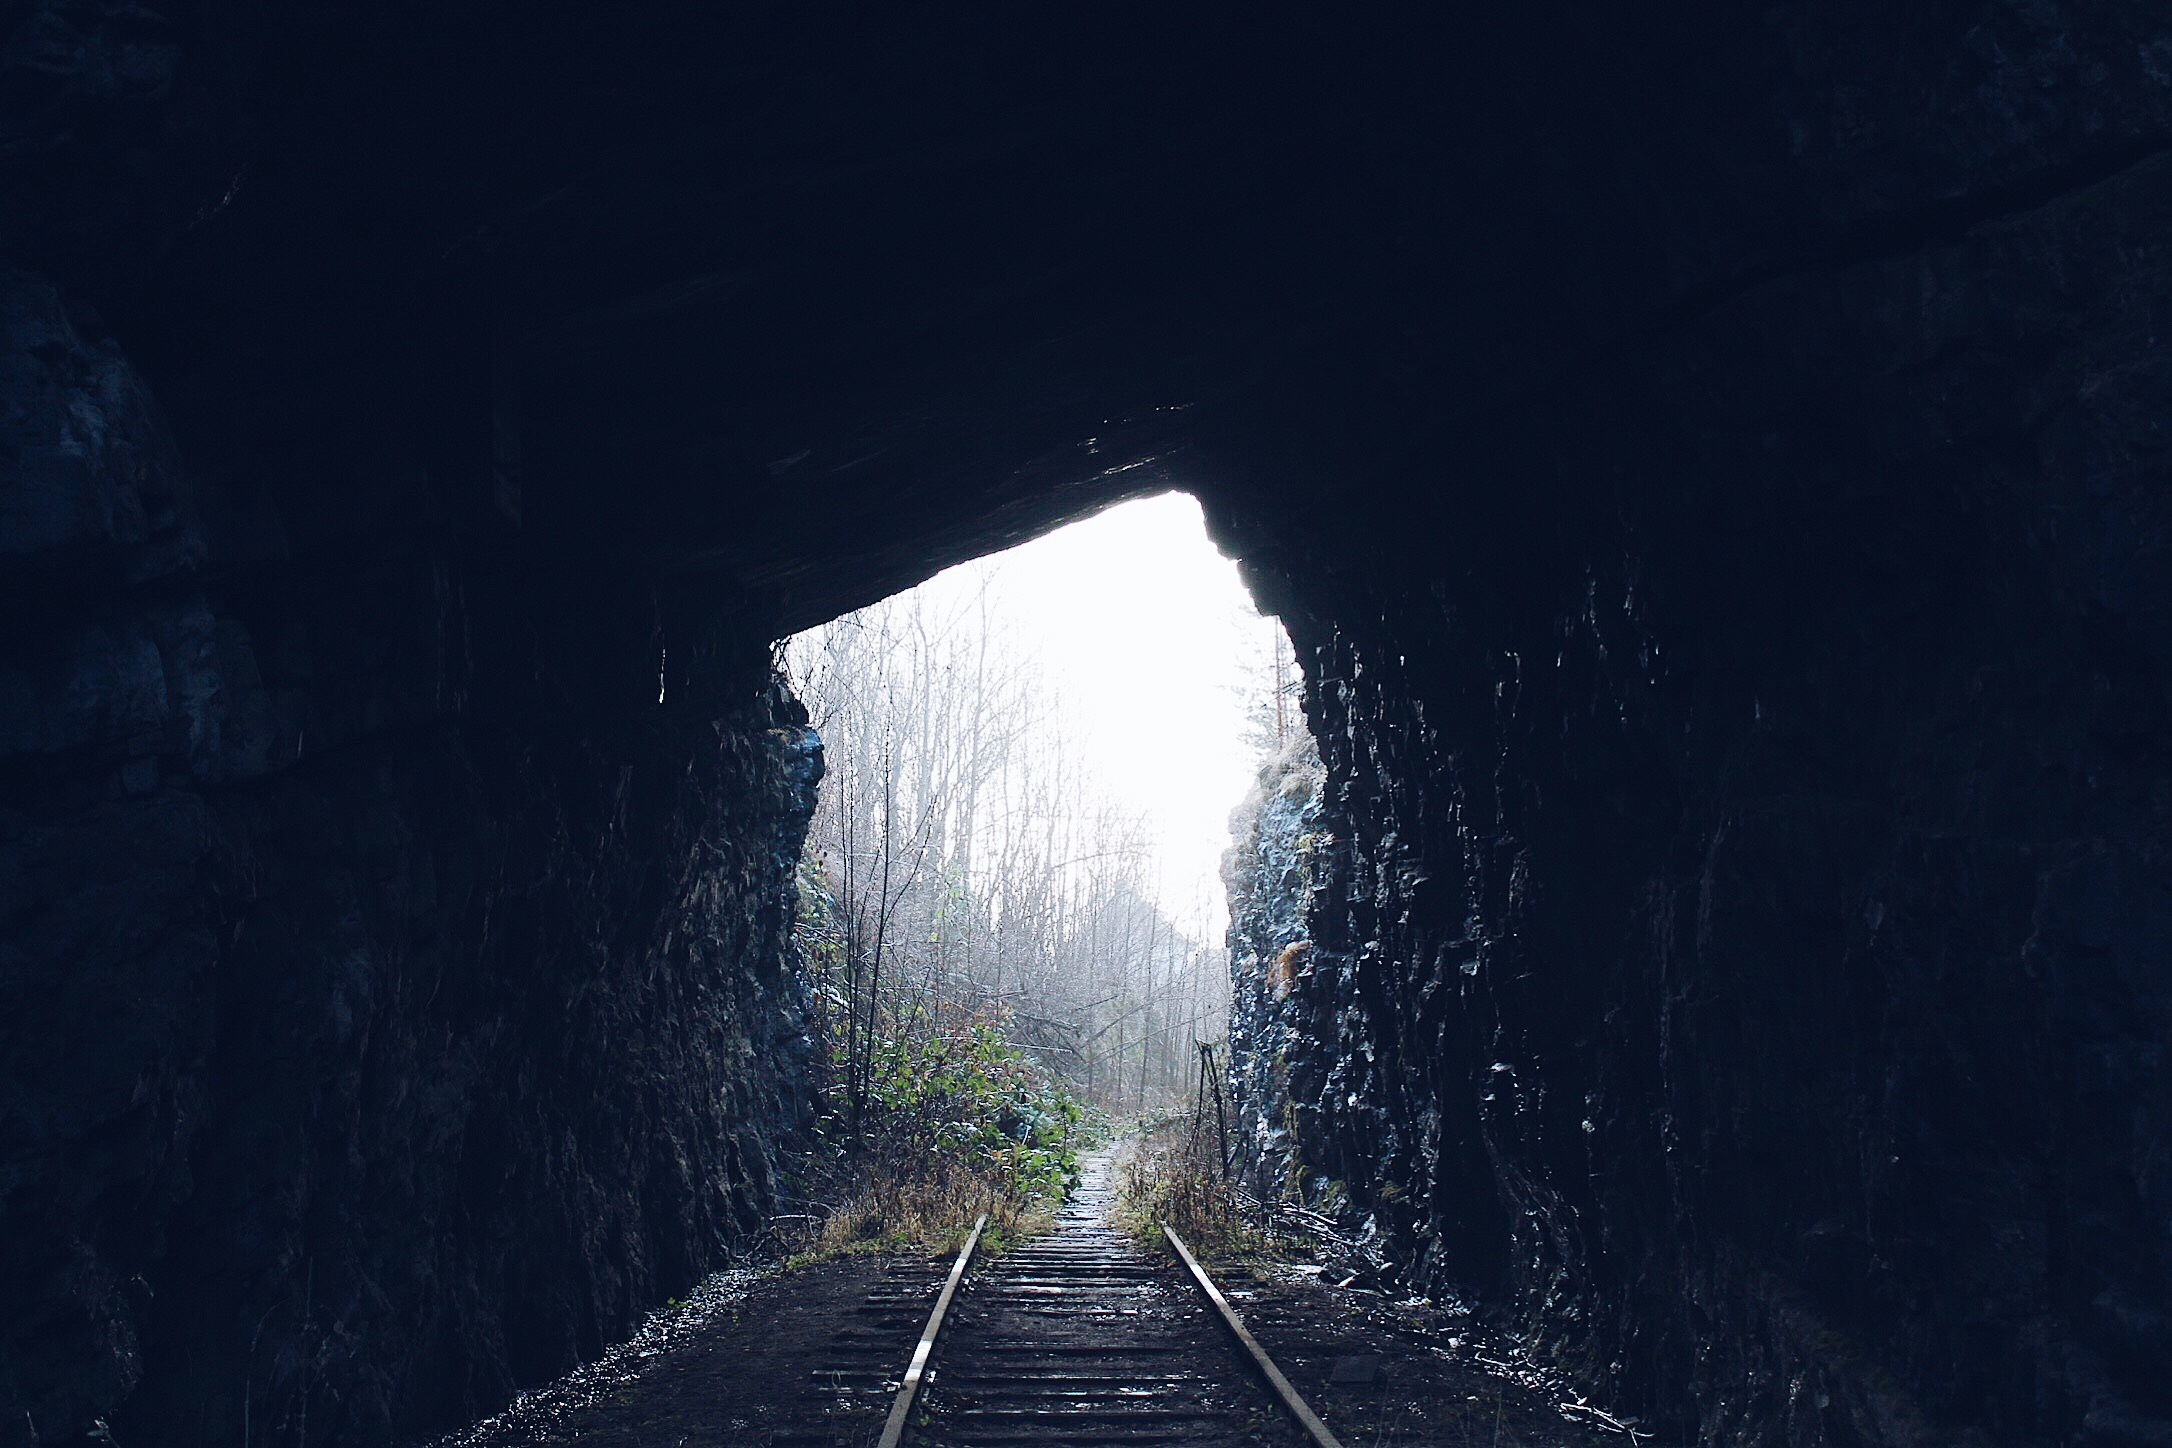 The End of the Tunnel